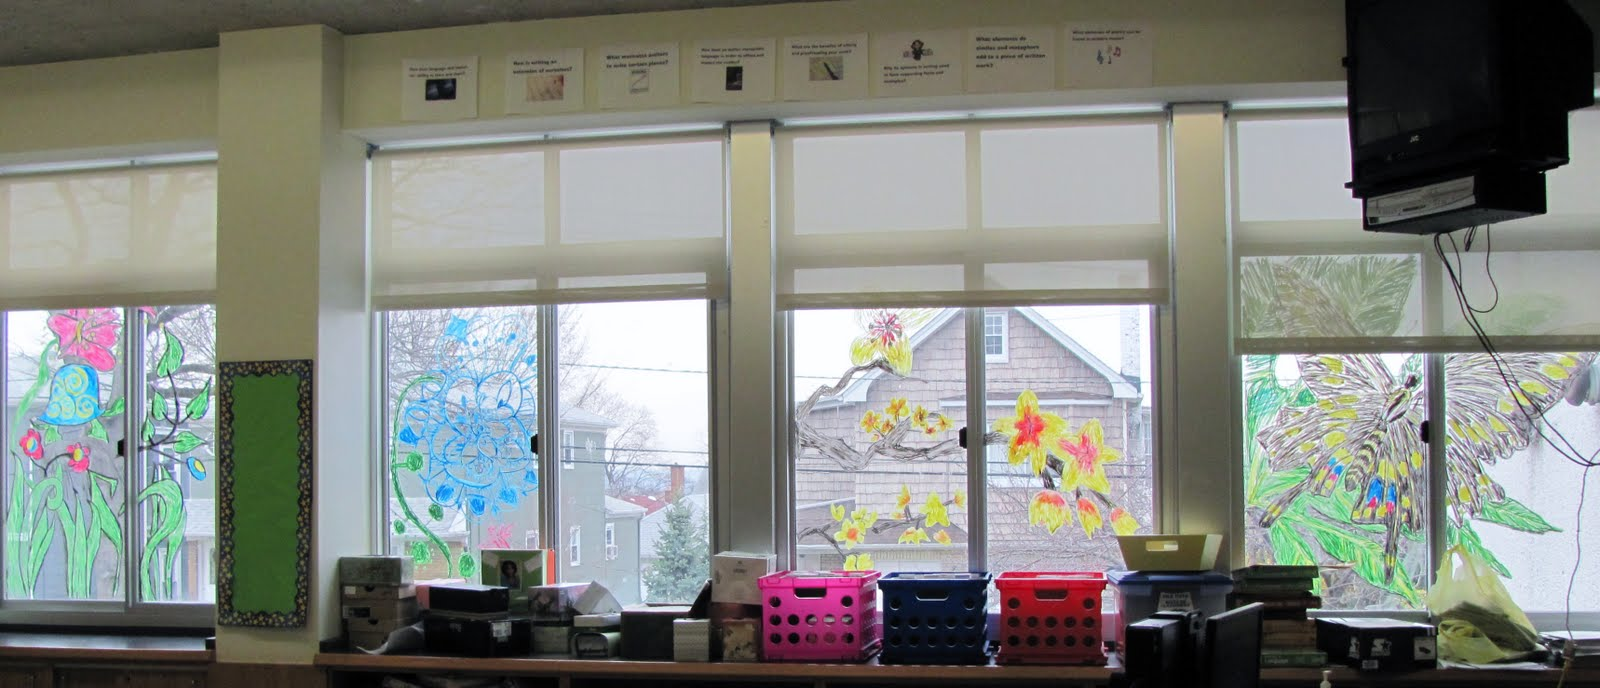 Classroom Windows Decoration Ideas : How to decorate a classroom beautifully teaching tofu